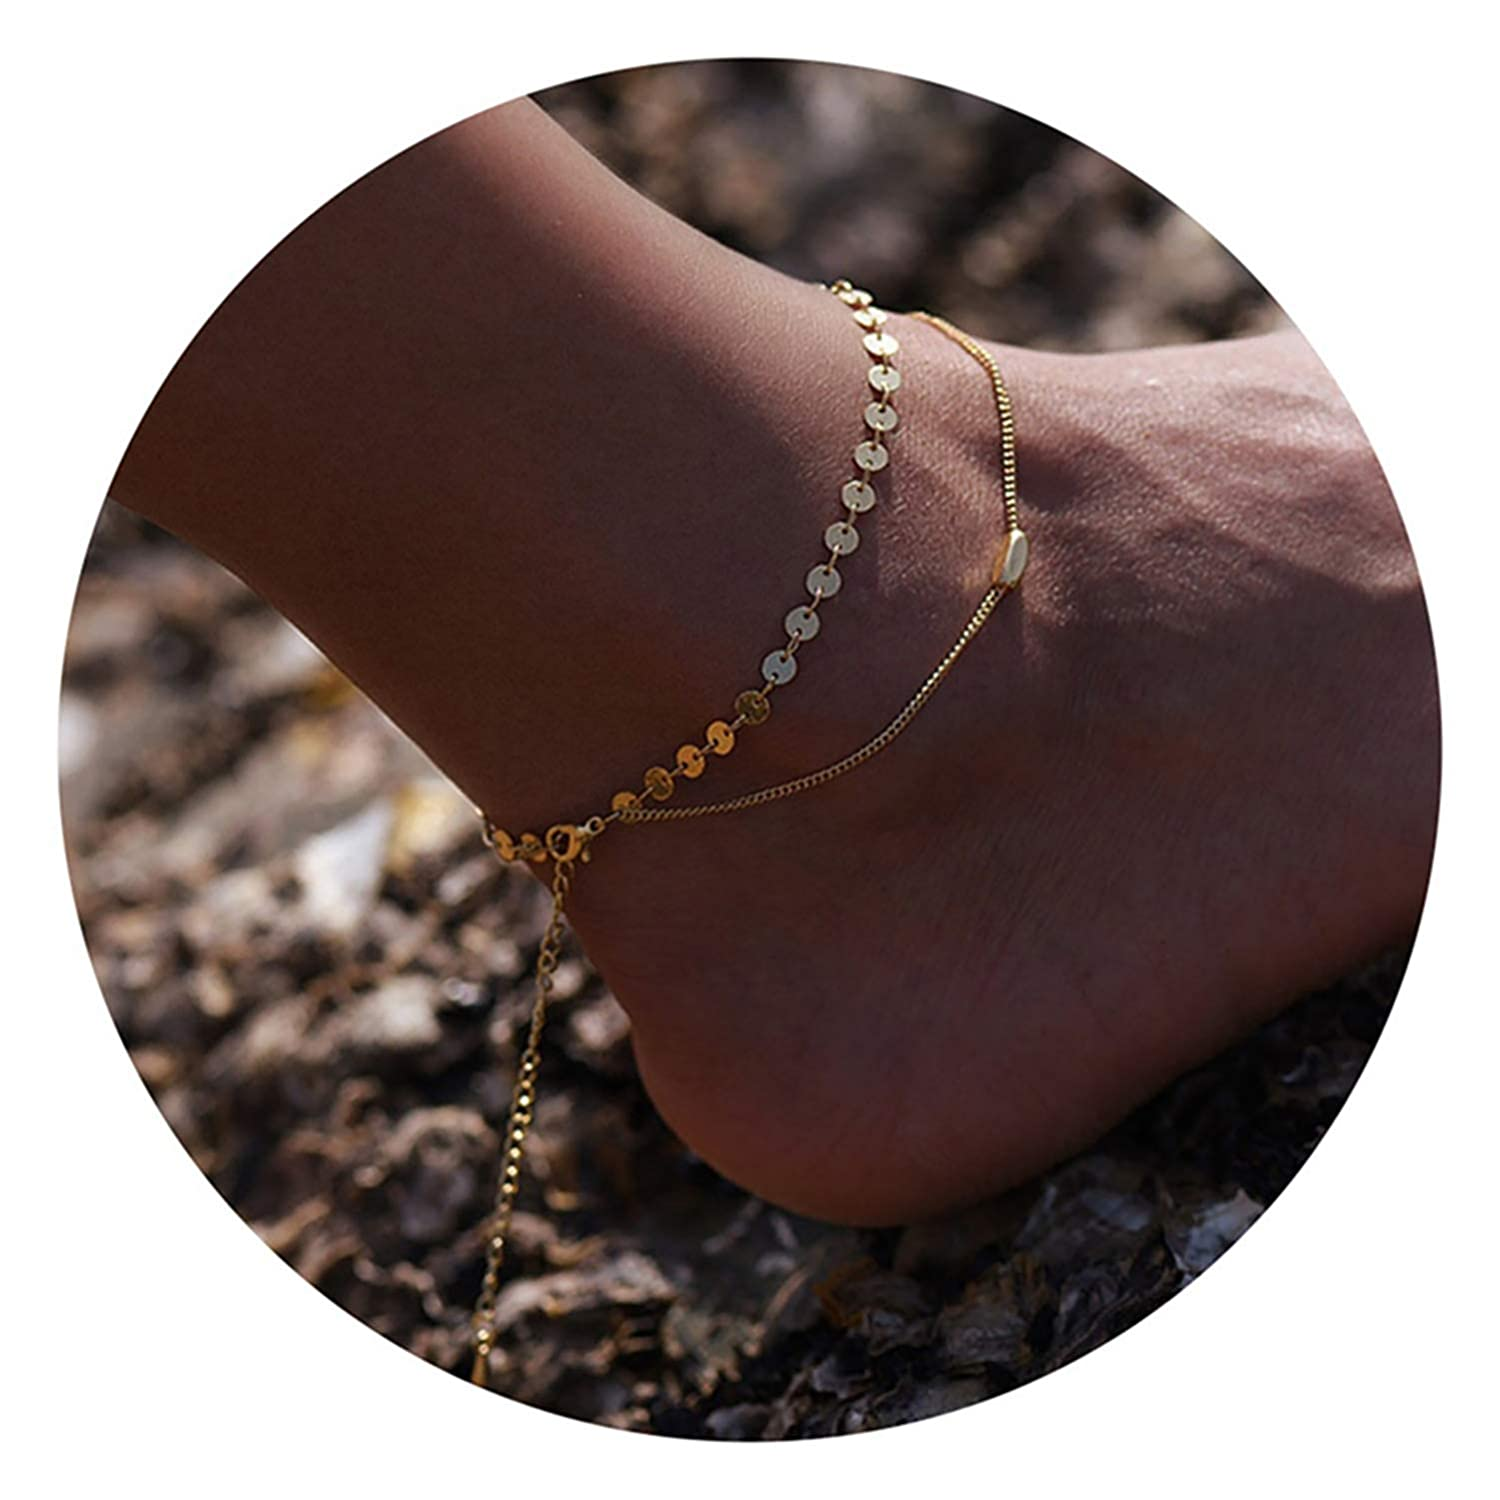 LOYATA Boho Layered Sequins Anklet 14K Gold Plated Dainty Ankle Bracelet Charm Anklets Foot Chain Jewelry for Women